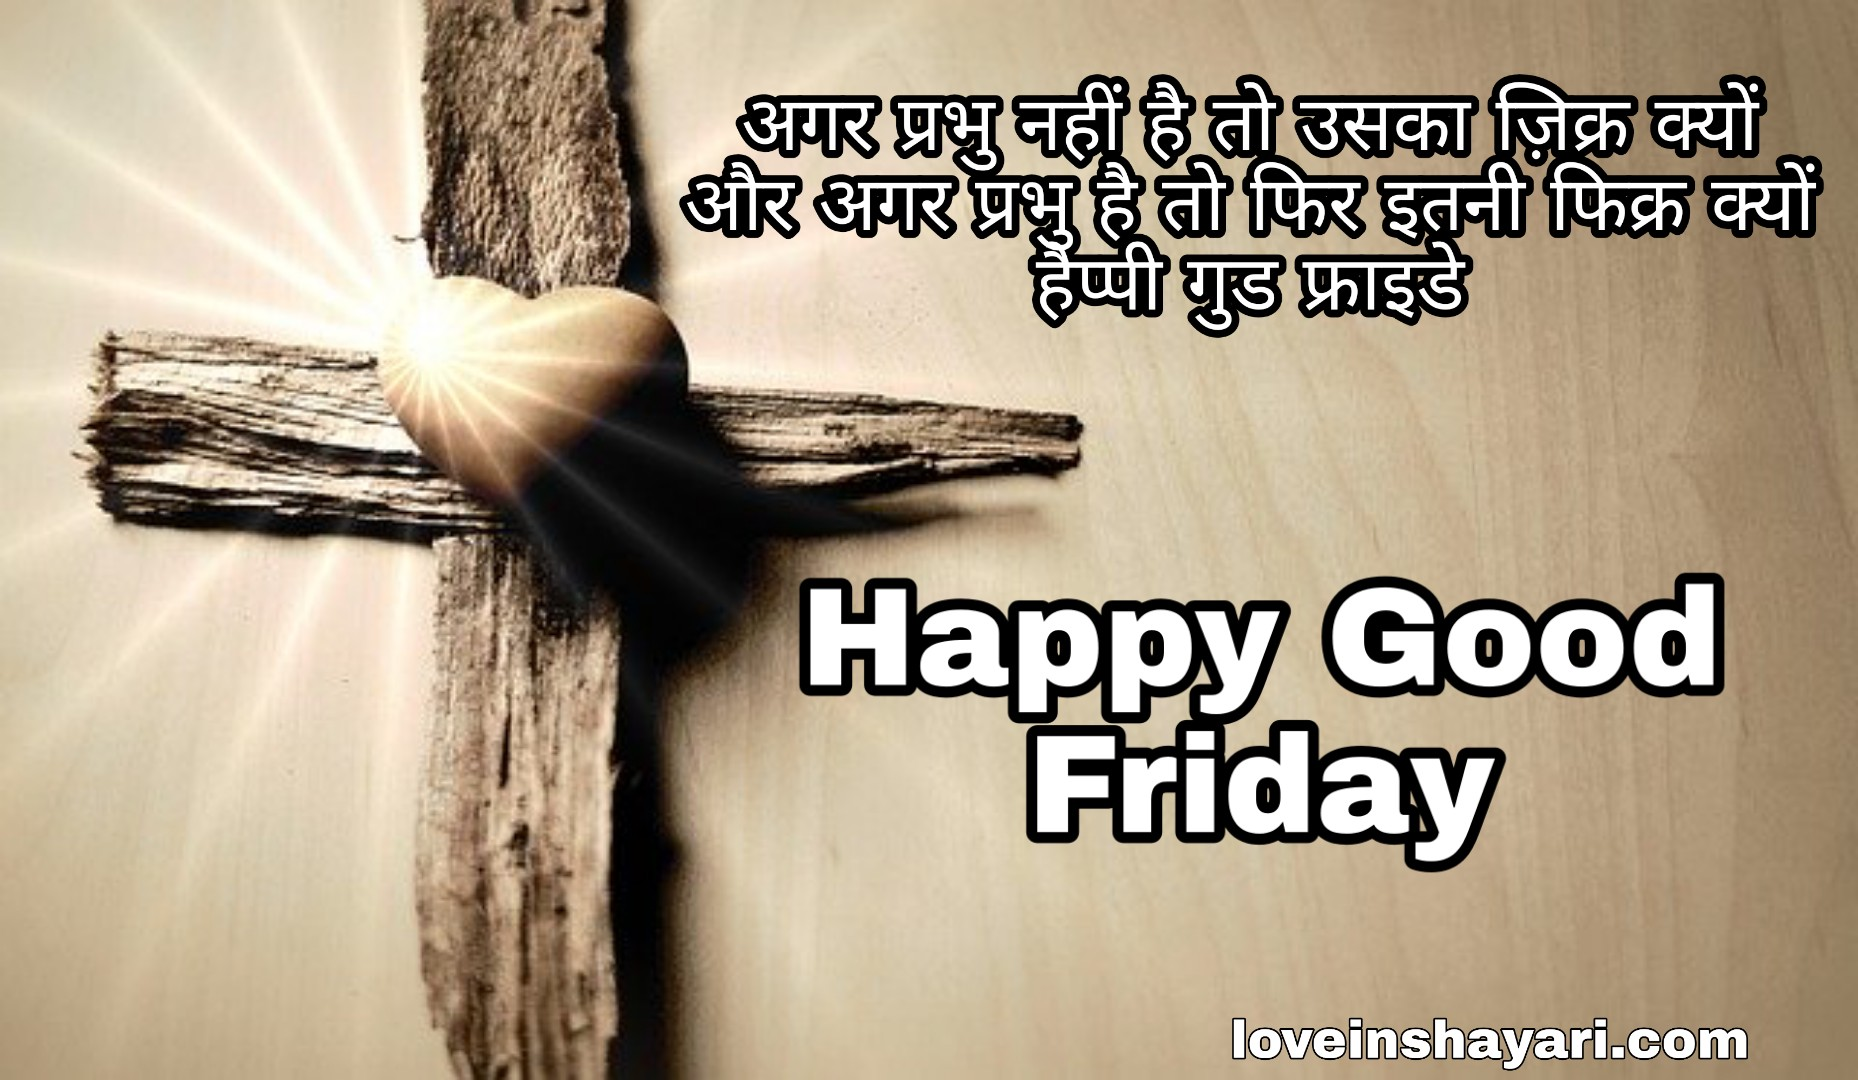 Photo of Good Friday status whatsapp status 2020